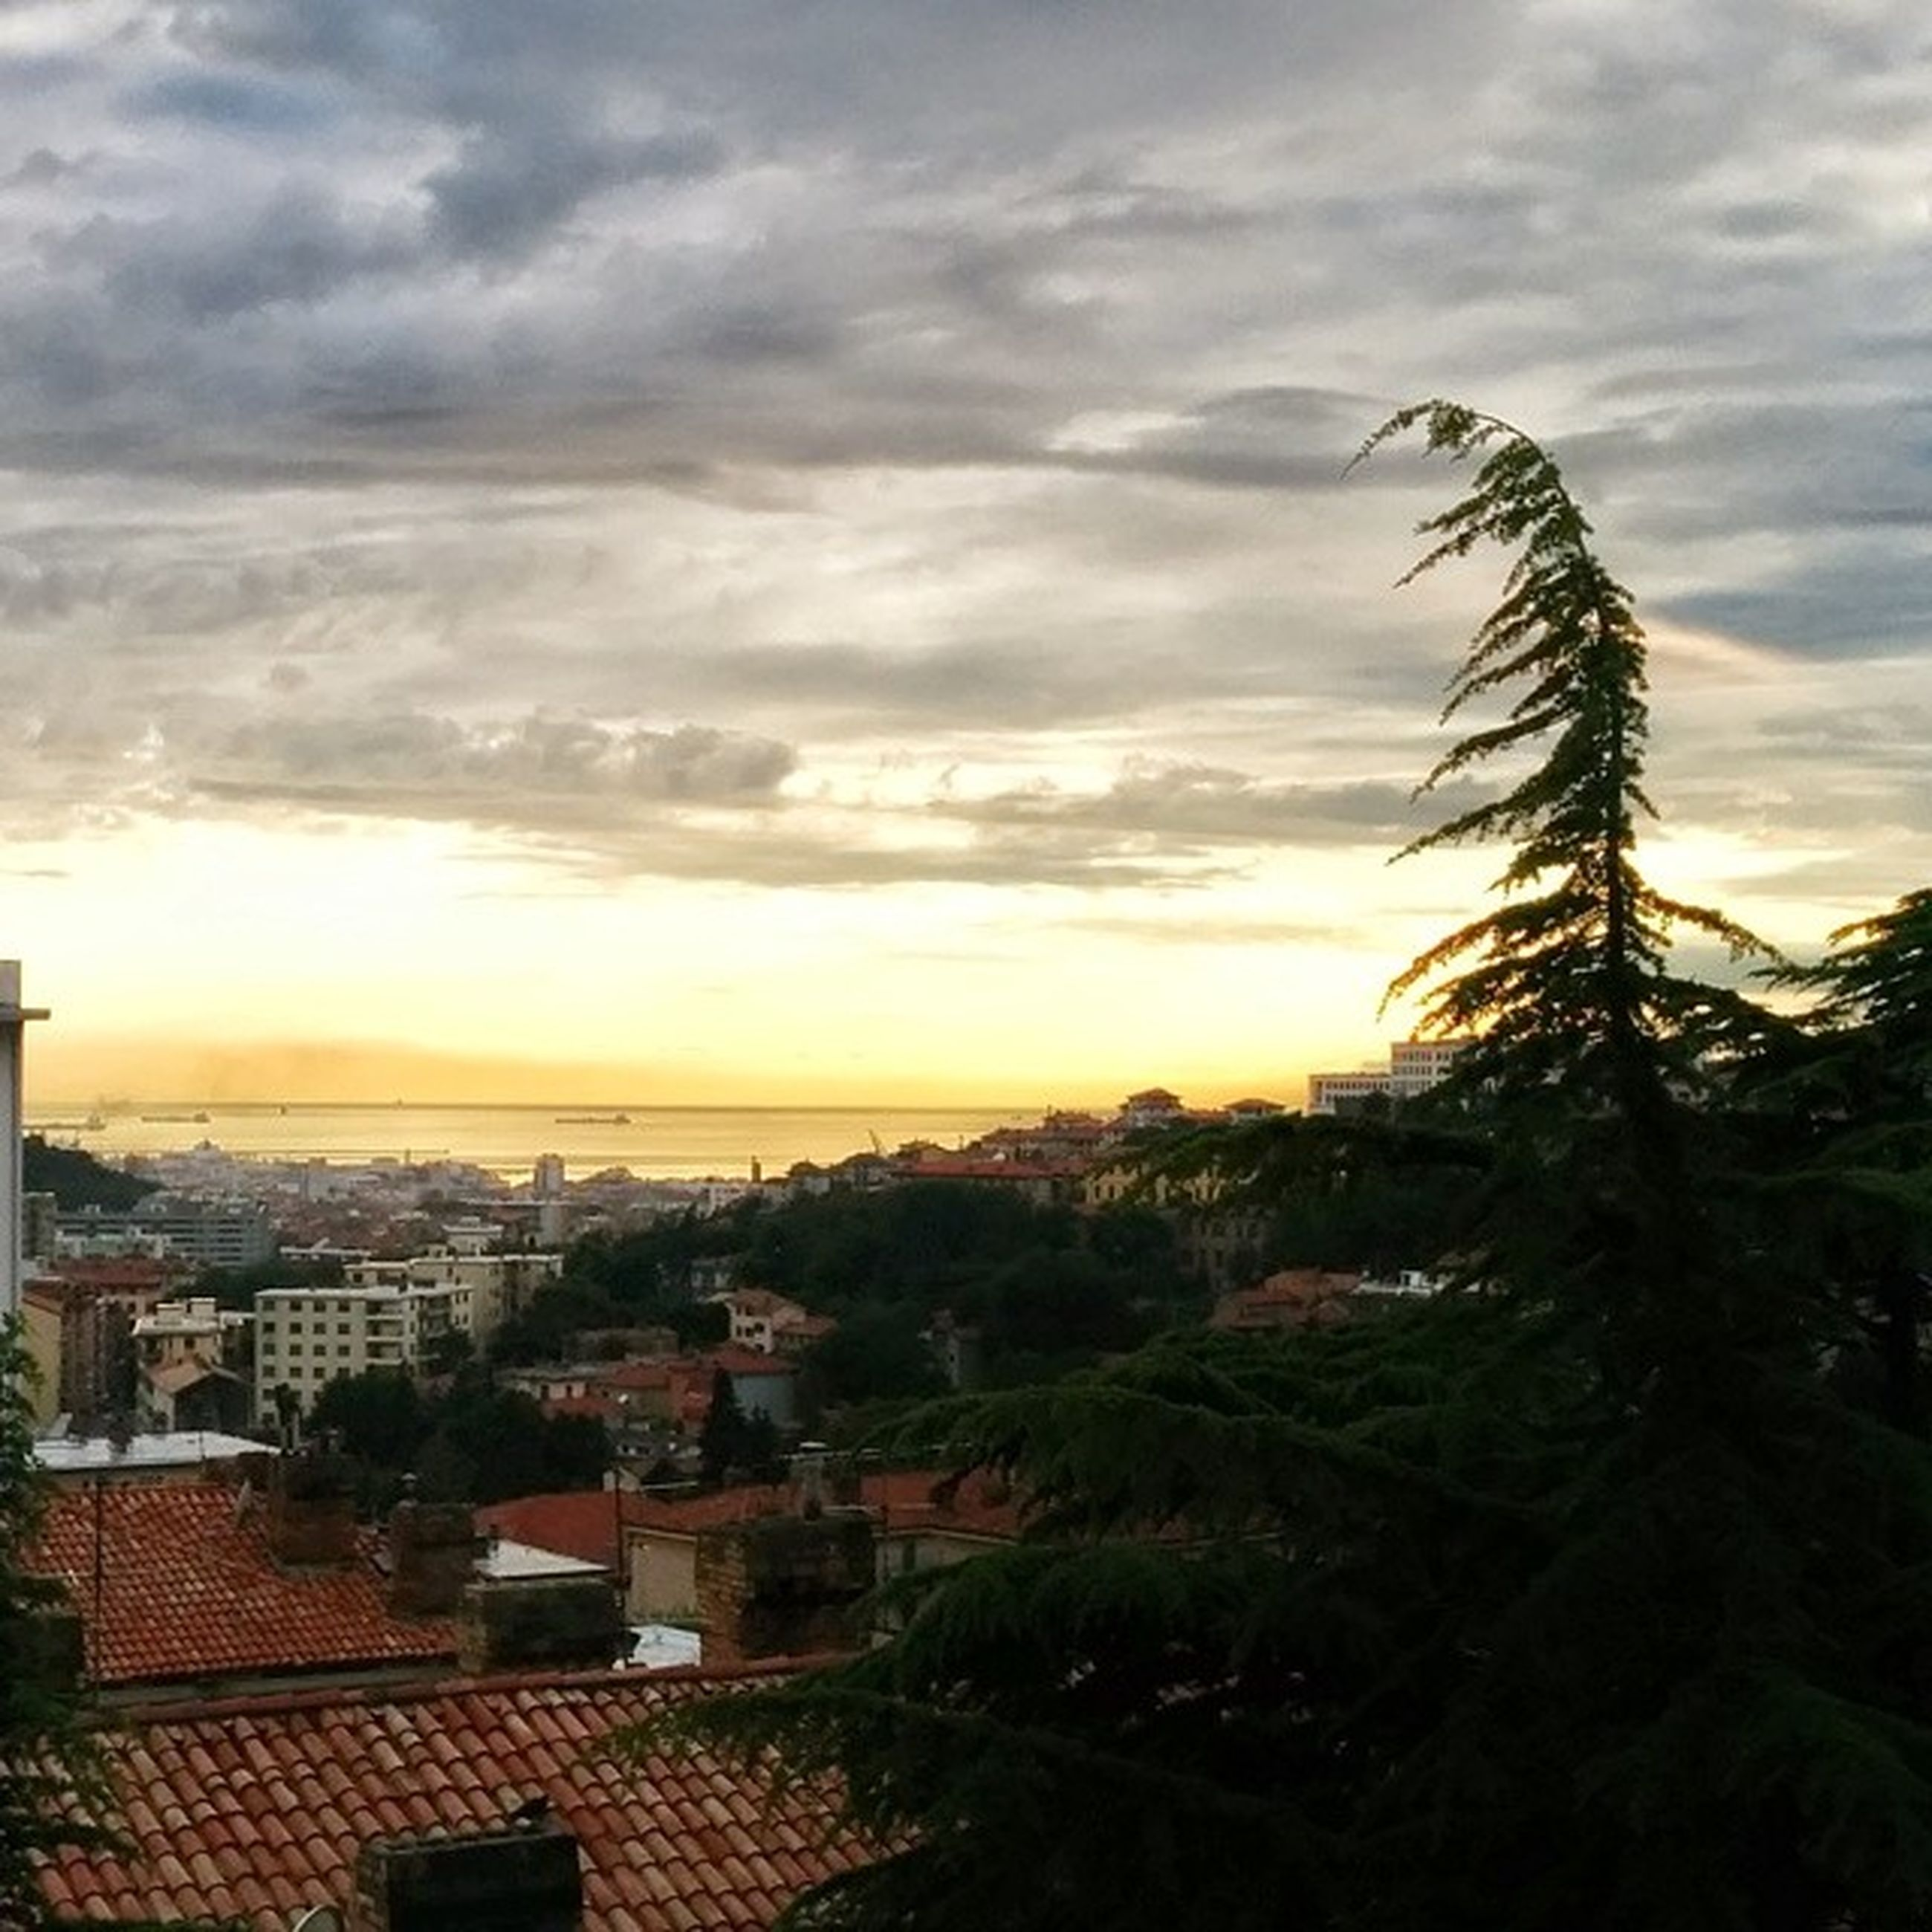 sky, building exterior, architecture, built structure, cloud - sky, sunset, cloudy, cityscape, city, cloud, residential structure, high angle view, residential building, house, residential district, tree, horizon over water, nature, sea, scenics